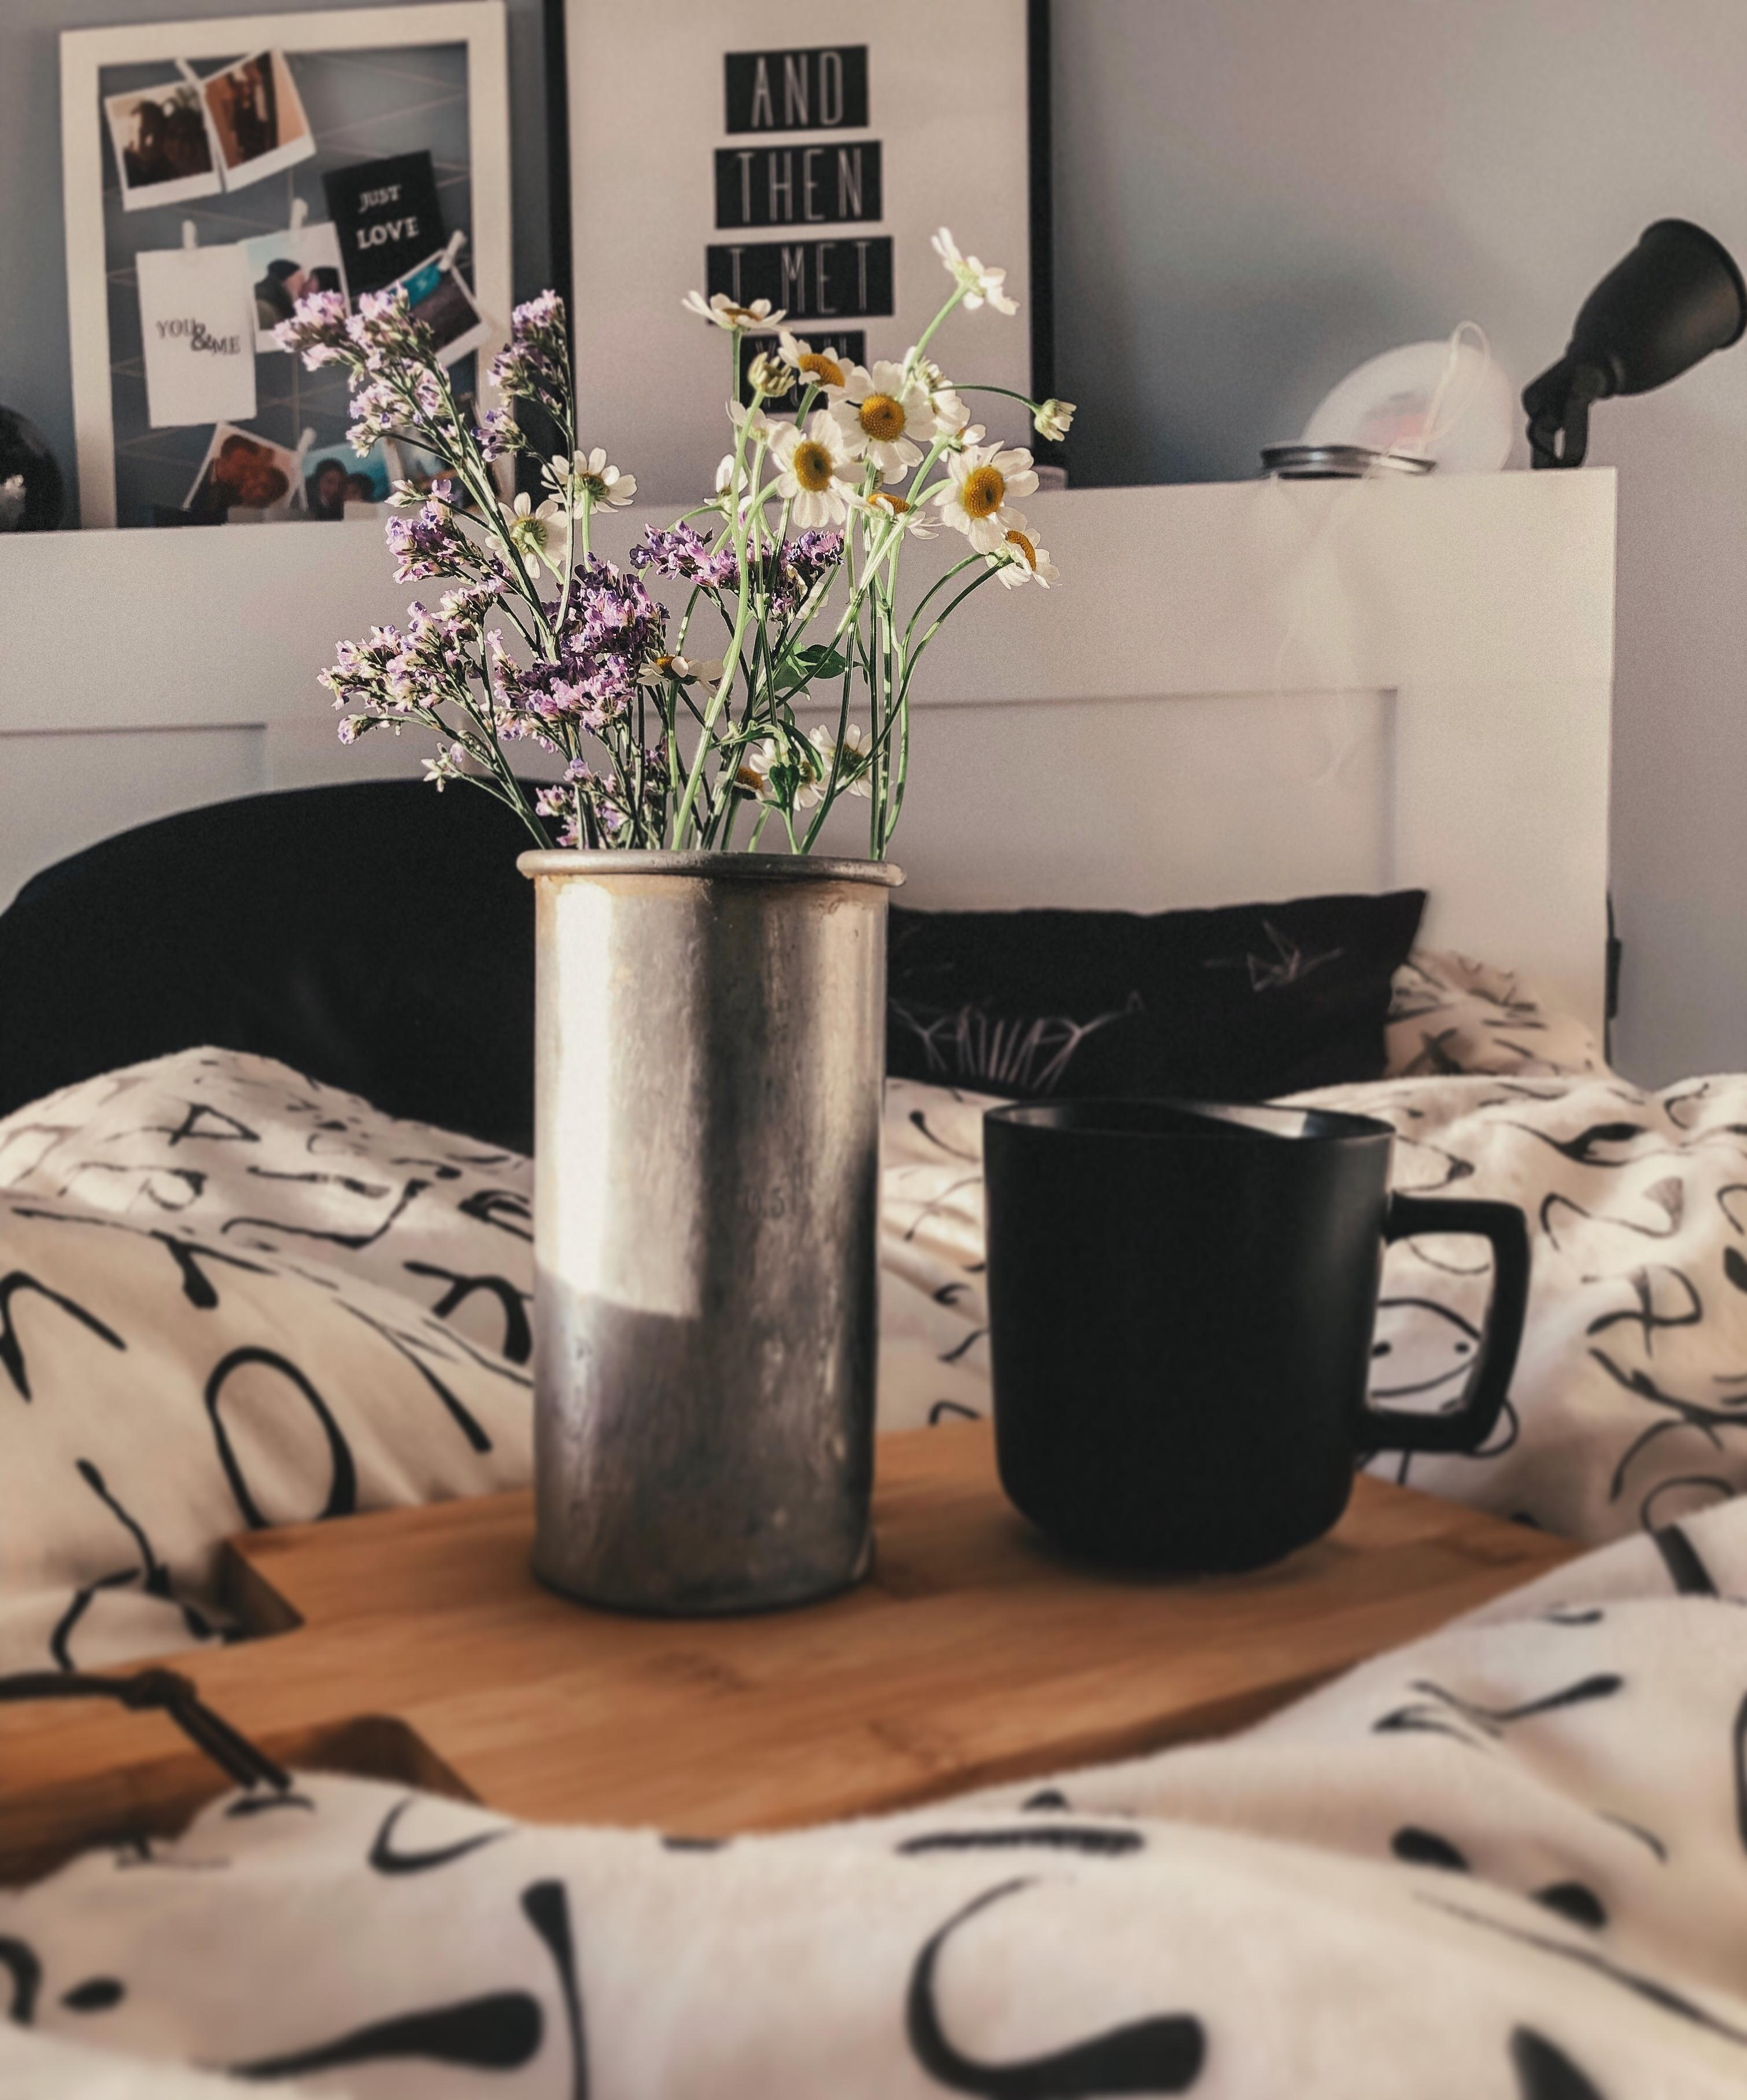 #skandi #freshflowers #friday #bedroom #sun #butfirstcoffee #coffee #flowers